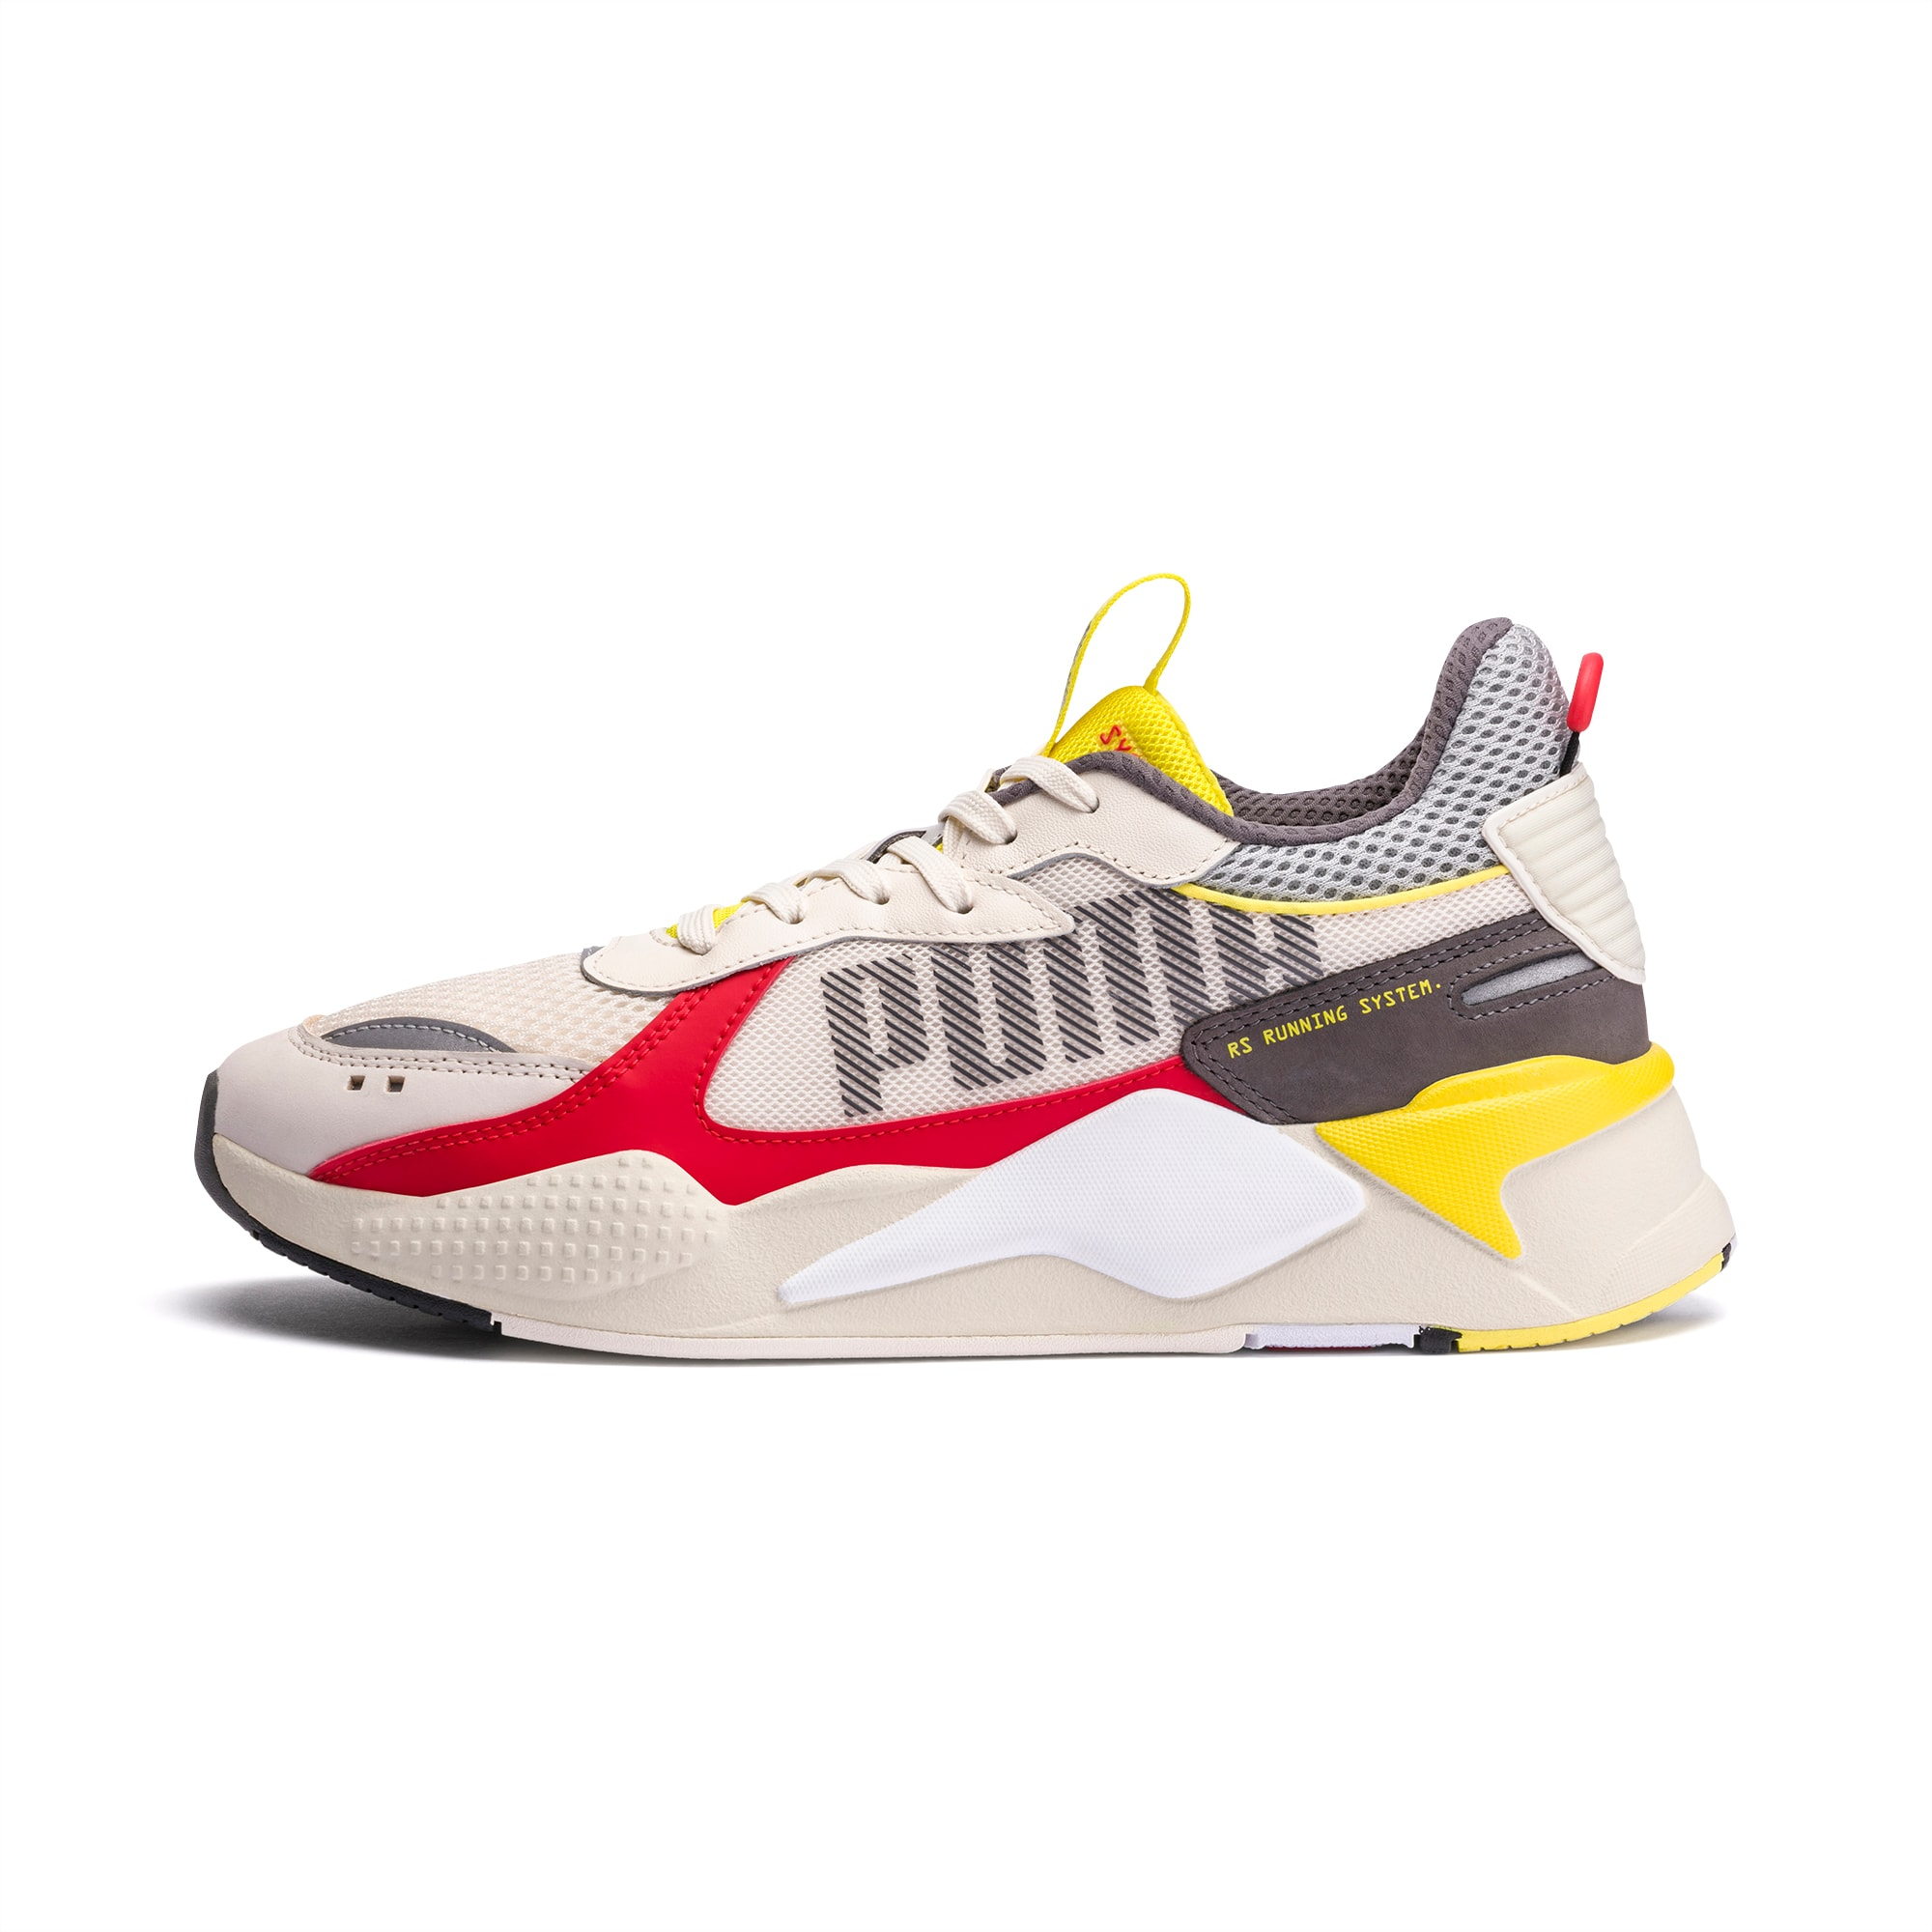 Puma Sneakers RS X Bold Whisper White High Risk Red